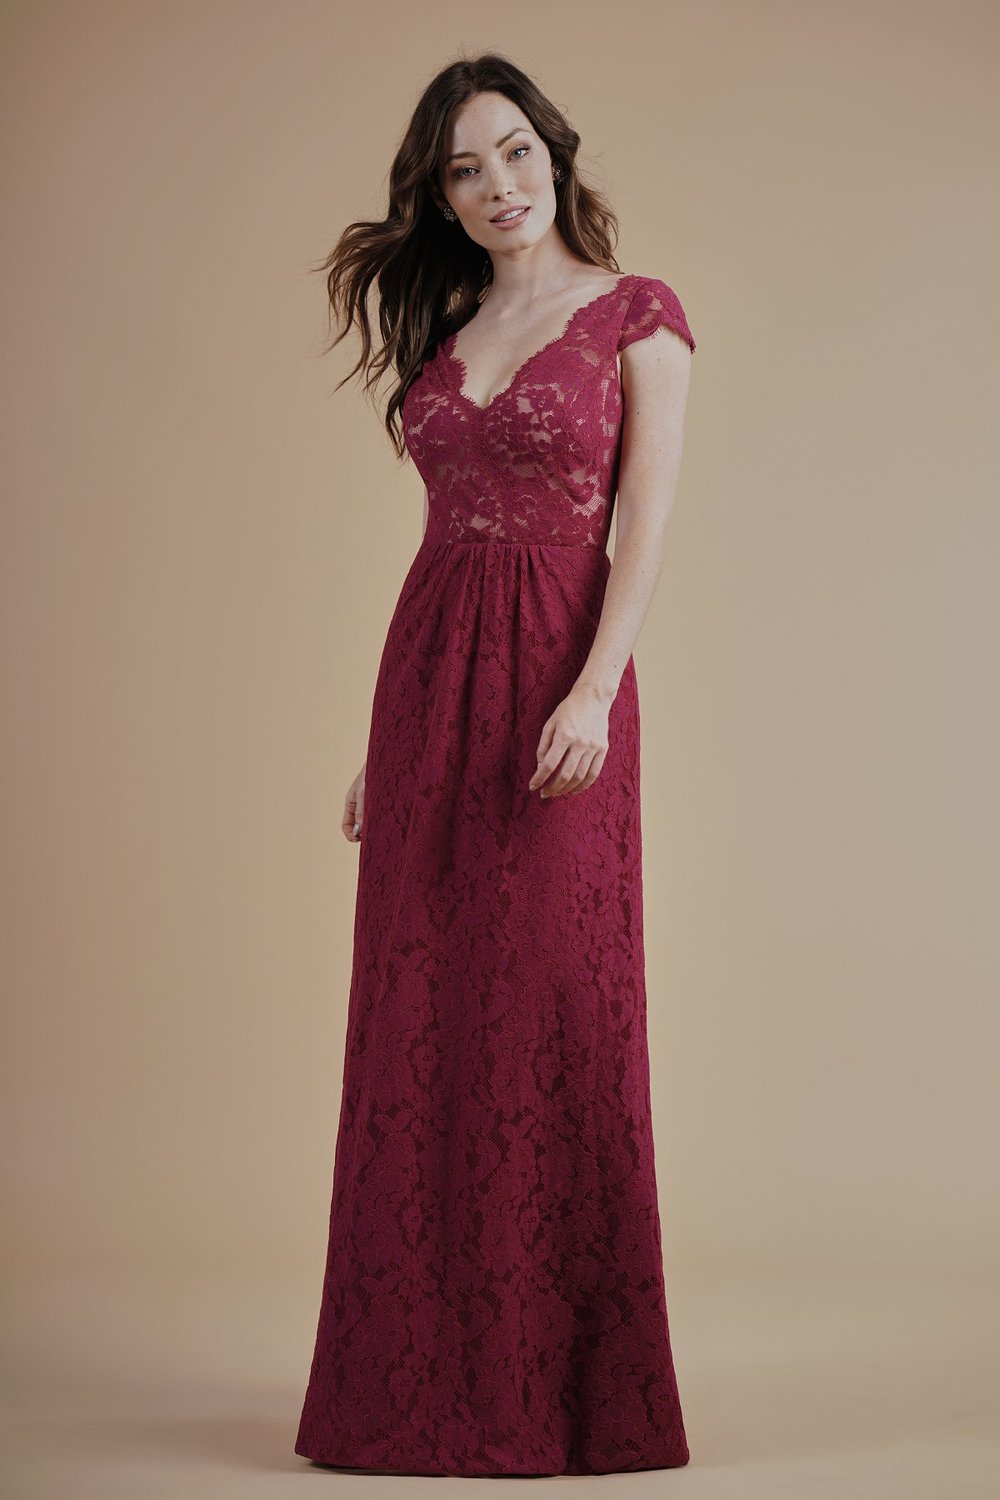 L214012 -  Pretty lace floor length bridesmaid dress with a scalloped lace V-neckline and scalloped V back. Cap sleeves and detailed gathers on the top of the skirt to complete the look.      Available in 16 colors